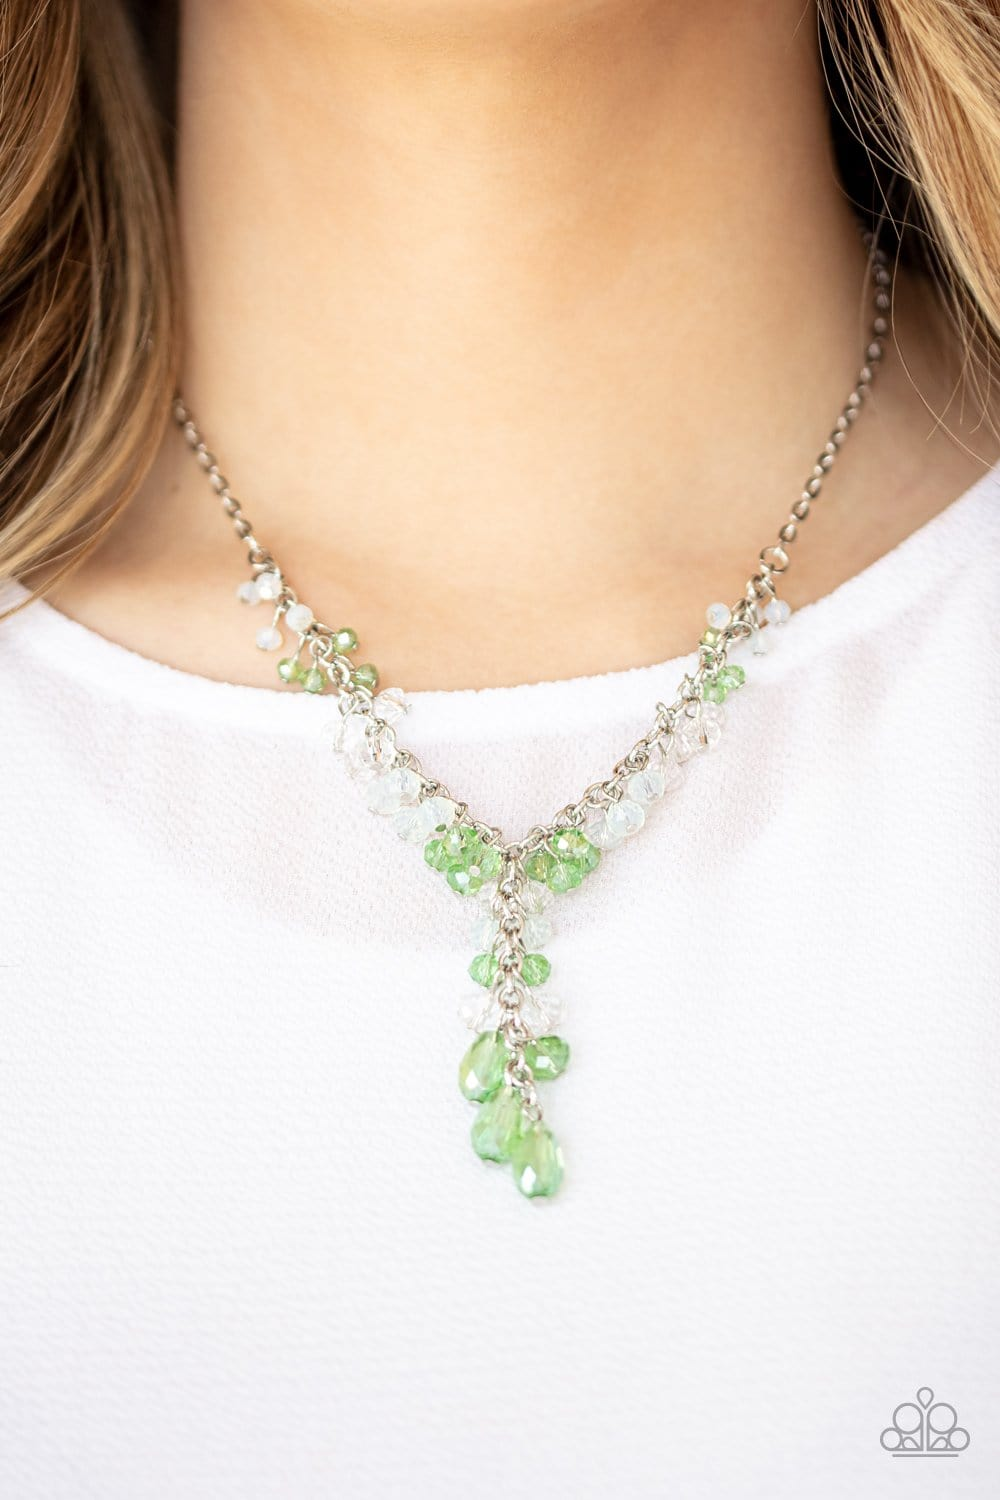 Paparazzi:Iridescent Illumination - Green Necklace